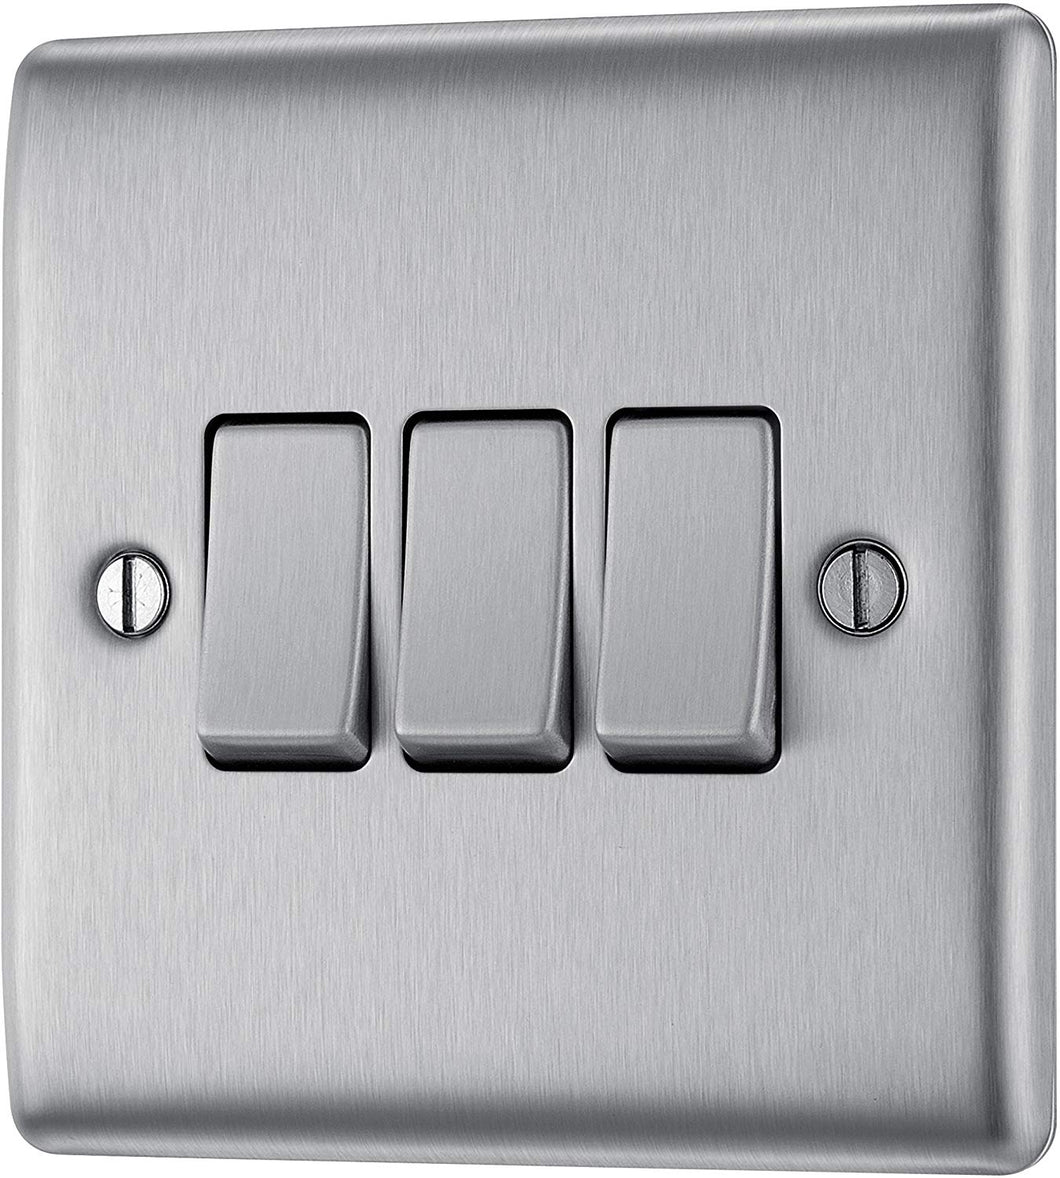 BG Electrical Triple Light Switch, Brushed Steel, 2-Way, 10AX - iBuy Africa